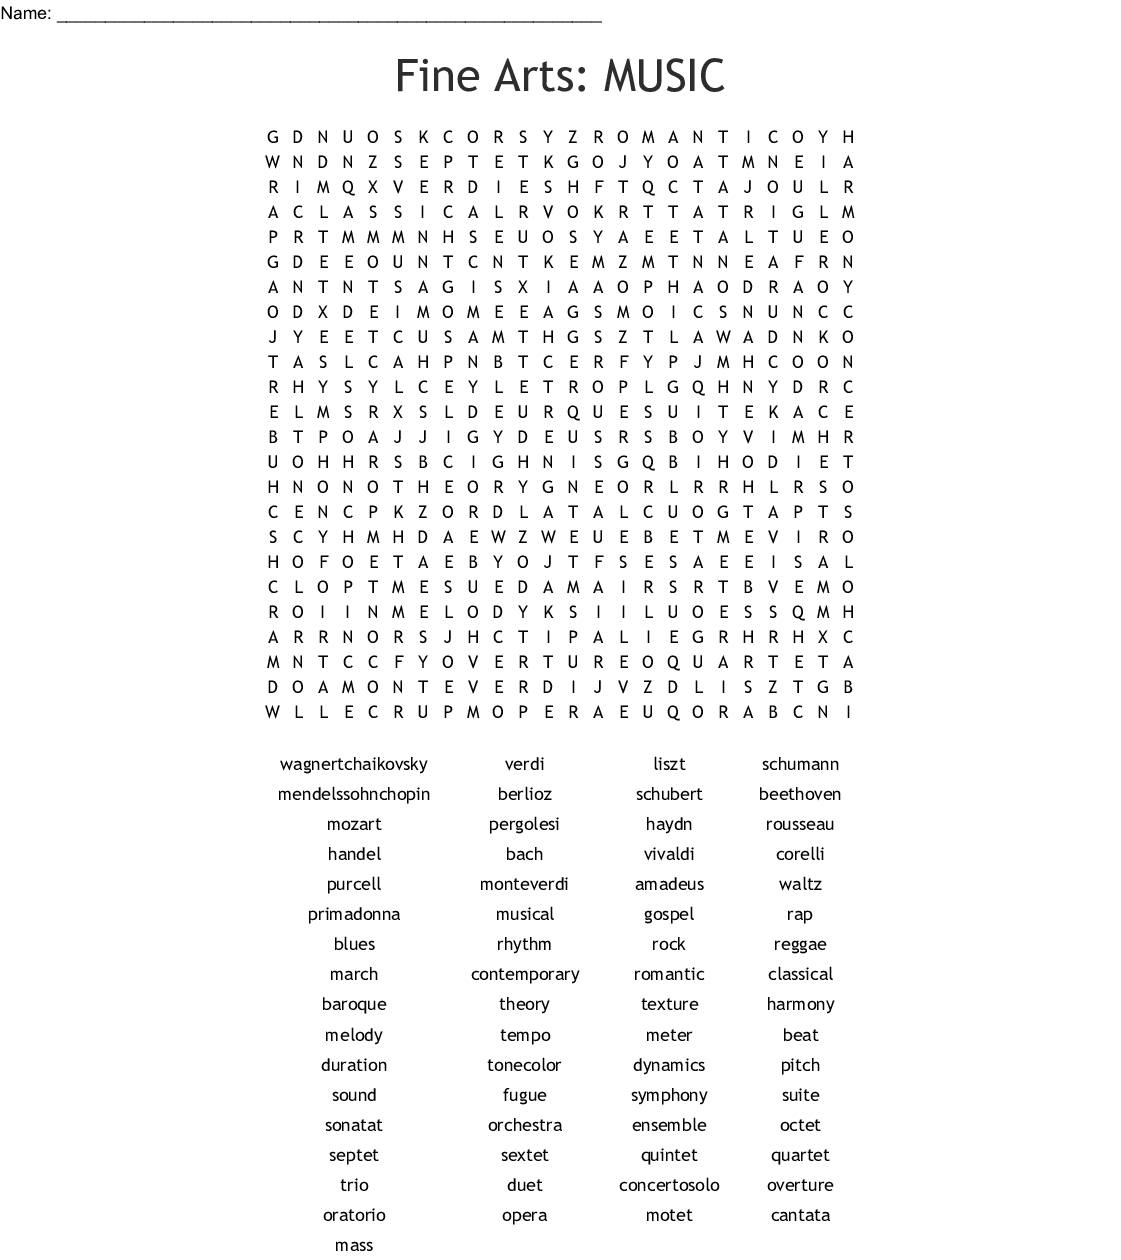 Musical Terms Word Search - Wordmint - Free Printable Music Word Searches